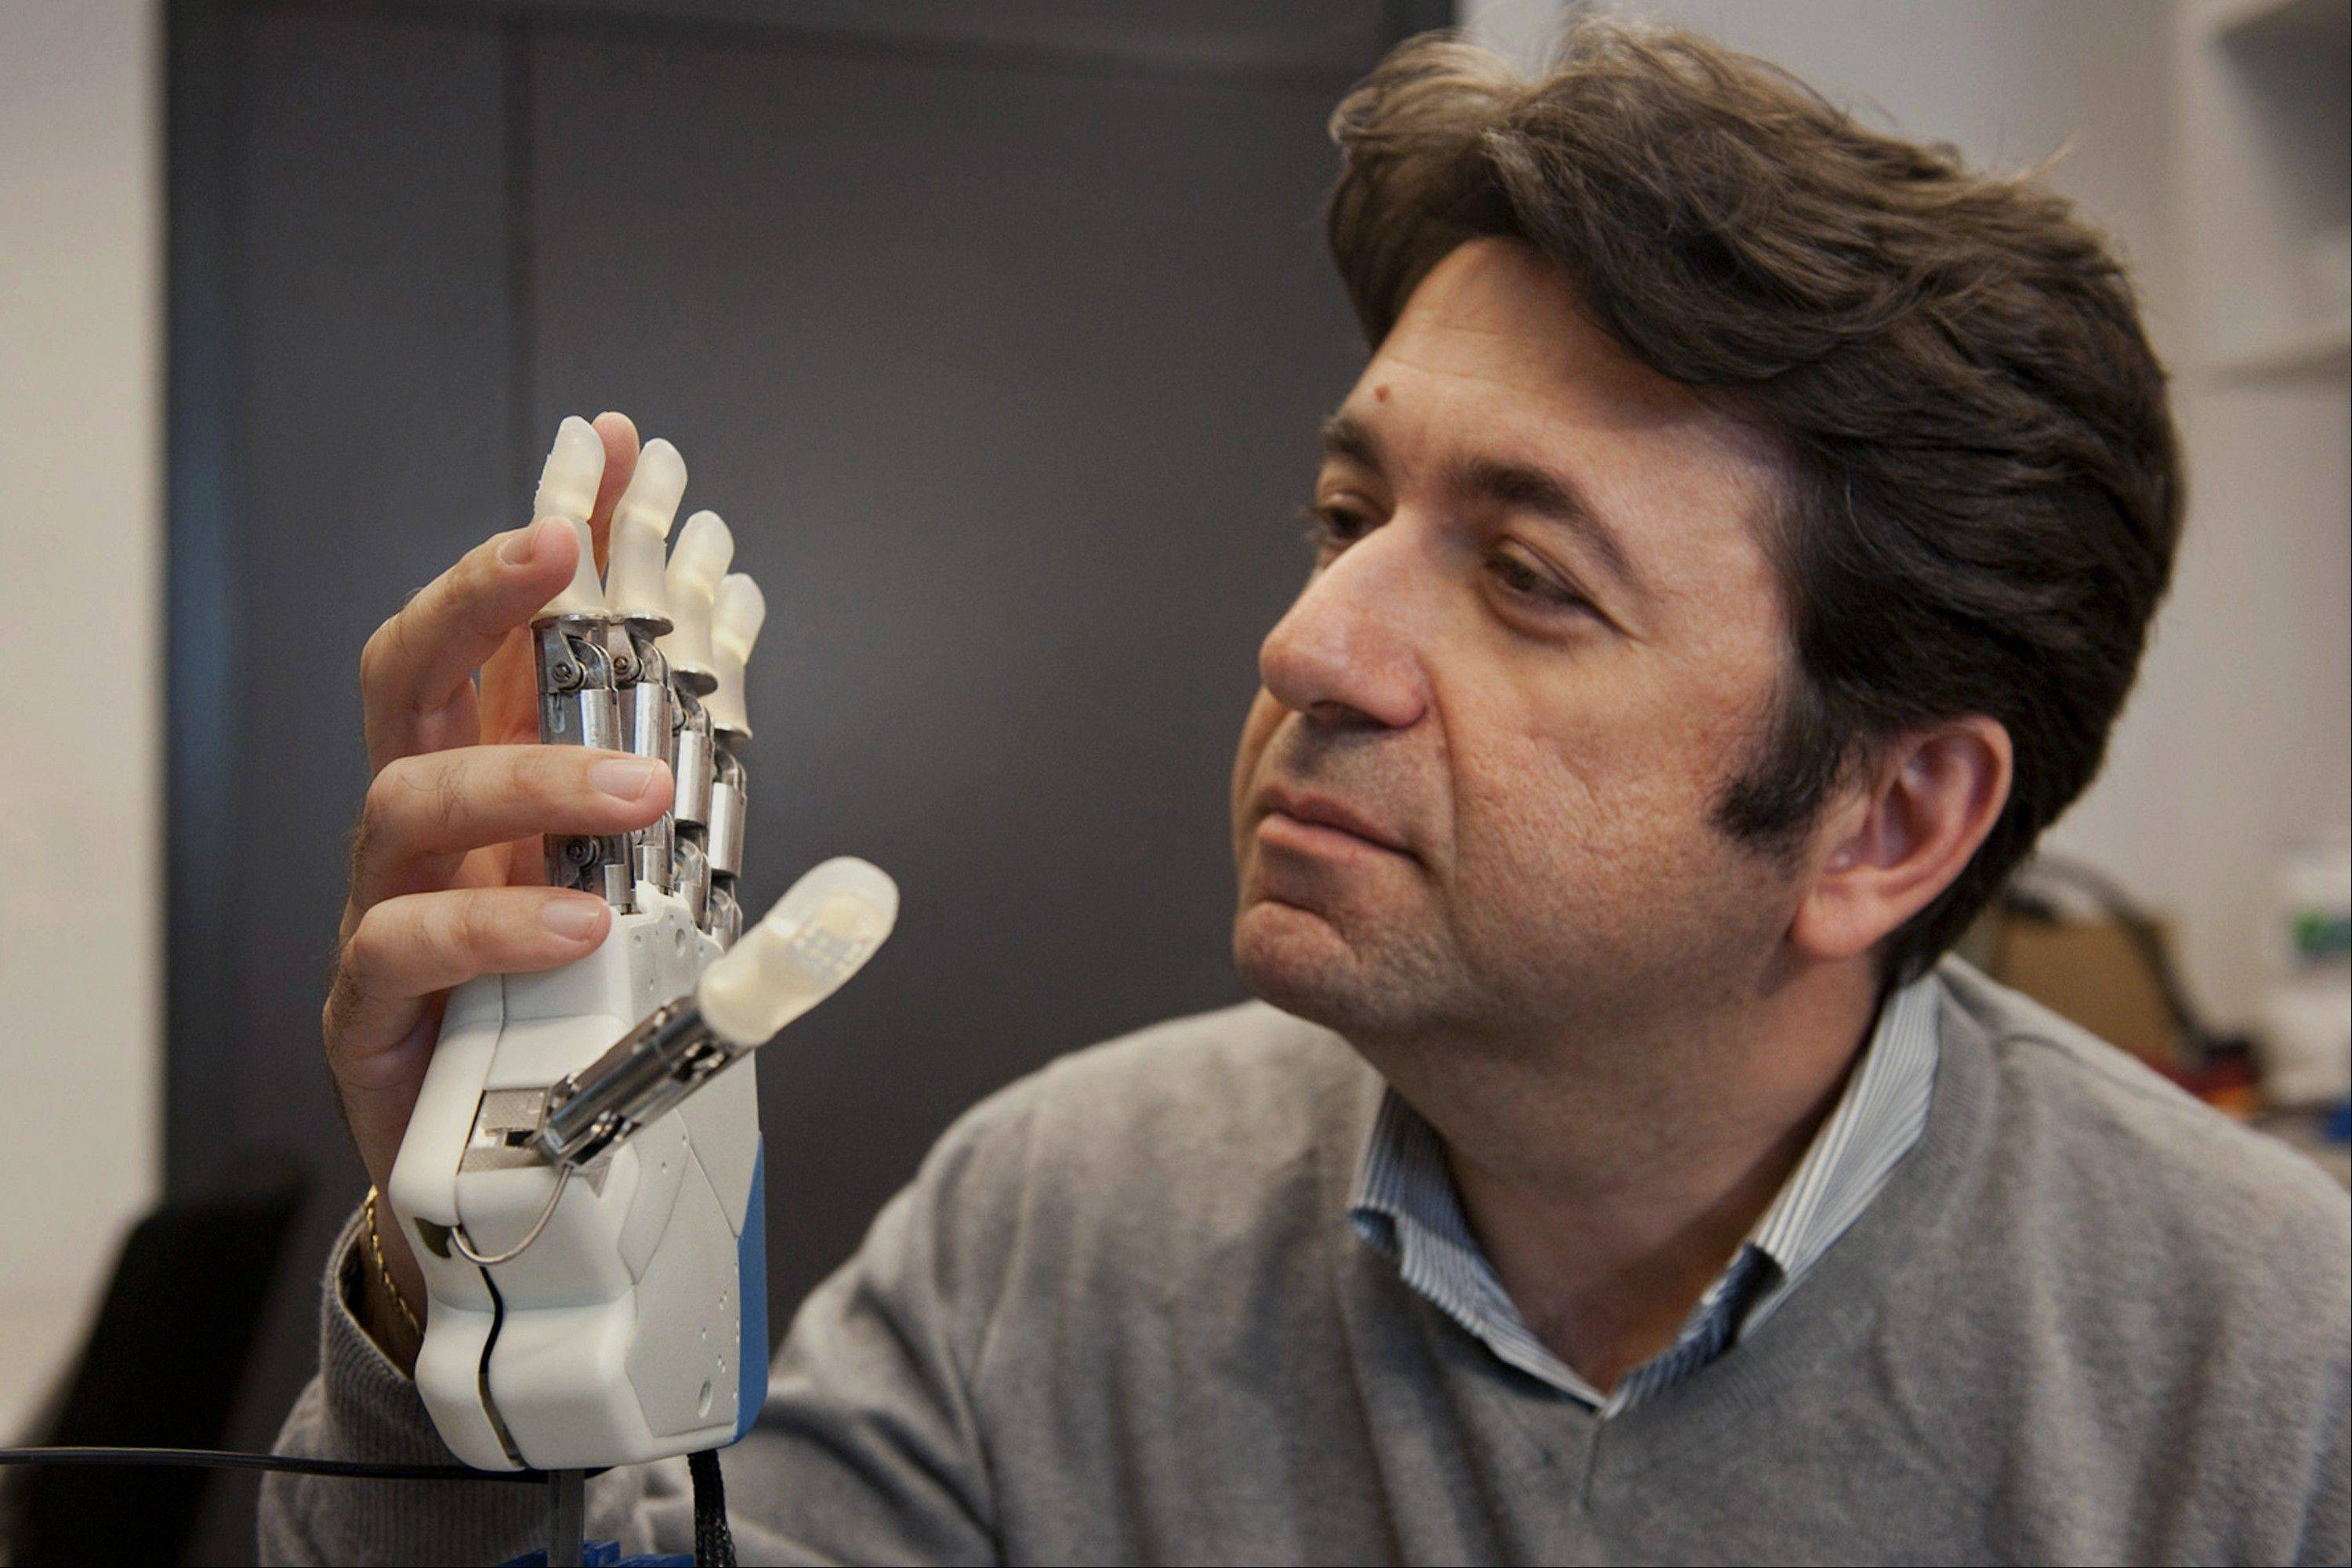 To feel what you touch, that's the holy grail for artificial limbs. In a step toward that goal, European researchers created a robotic hand that let an amputee feel differences between a bottle, a baseball and a mandarin orange.